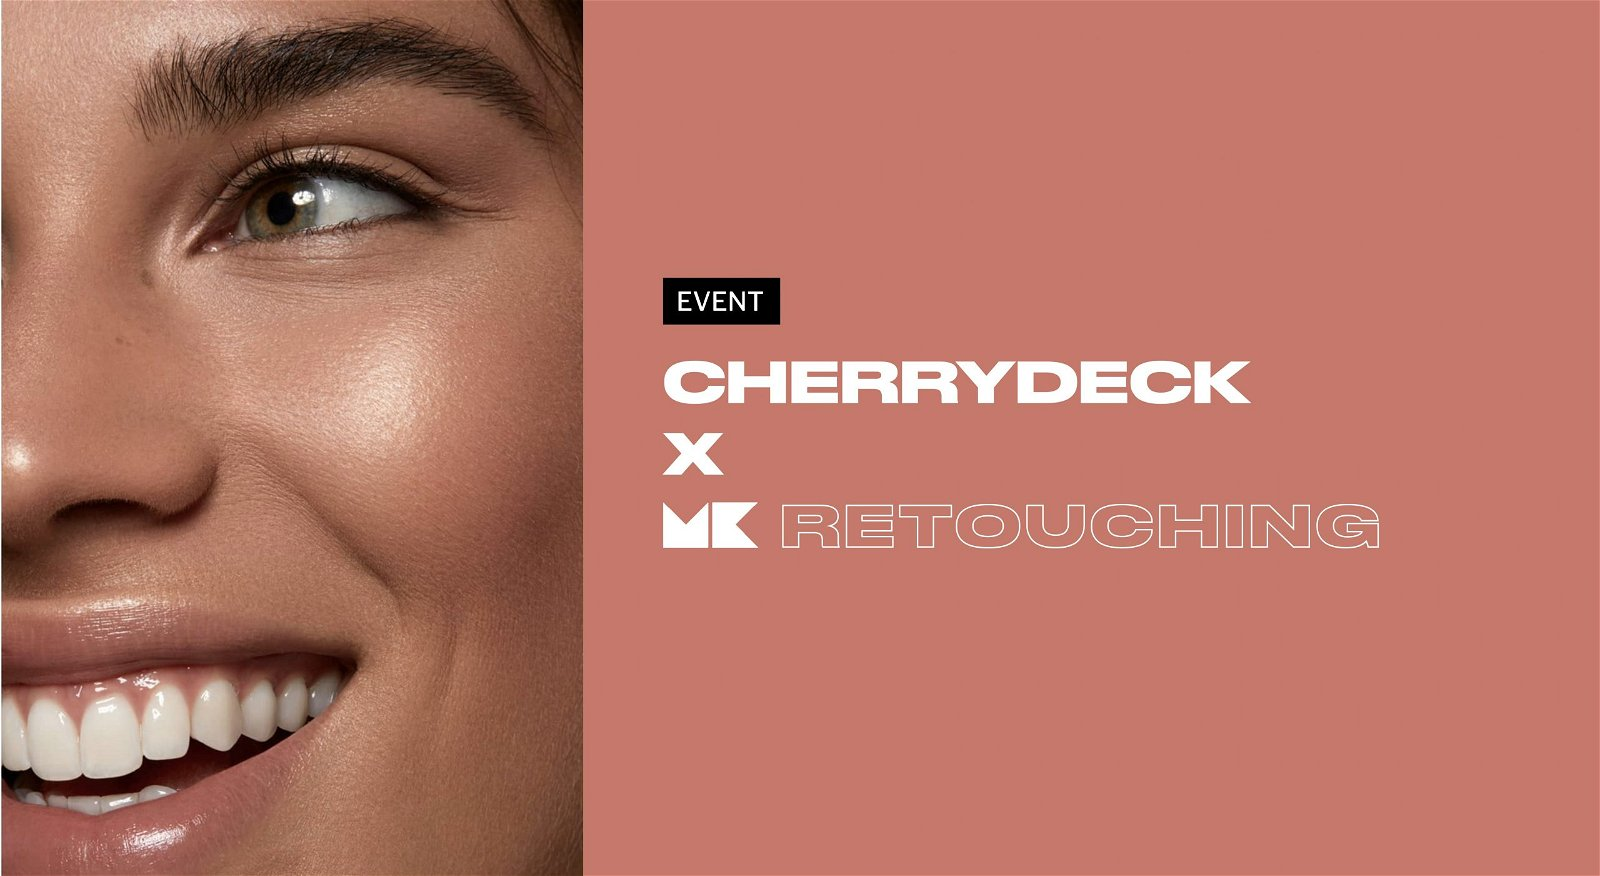 Networking in the beauty industry cherrydeck